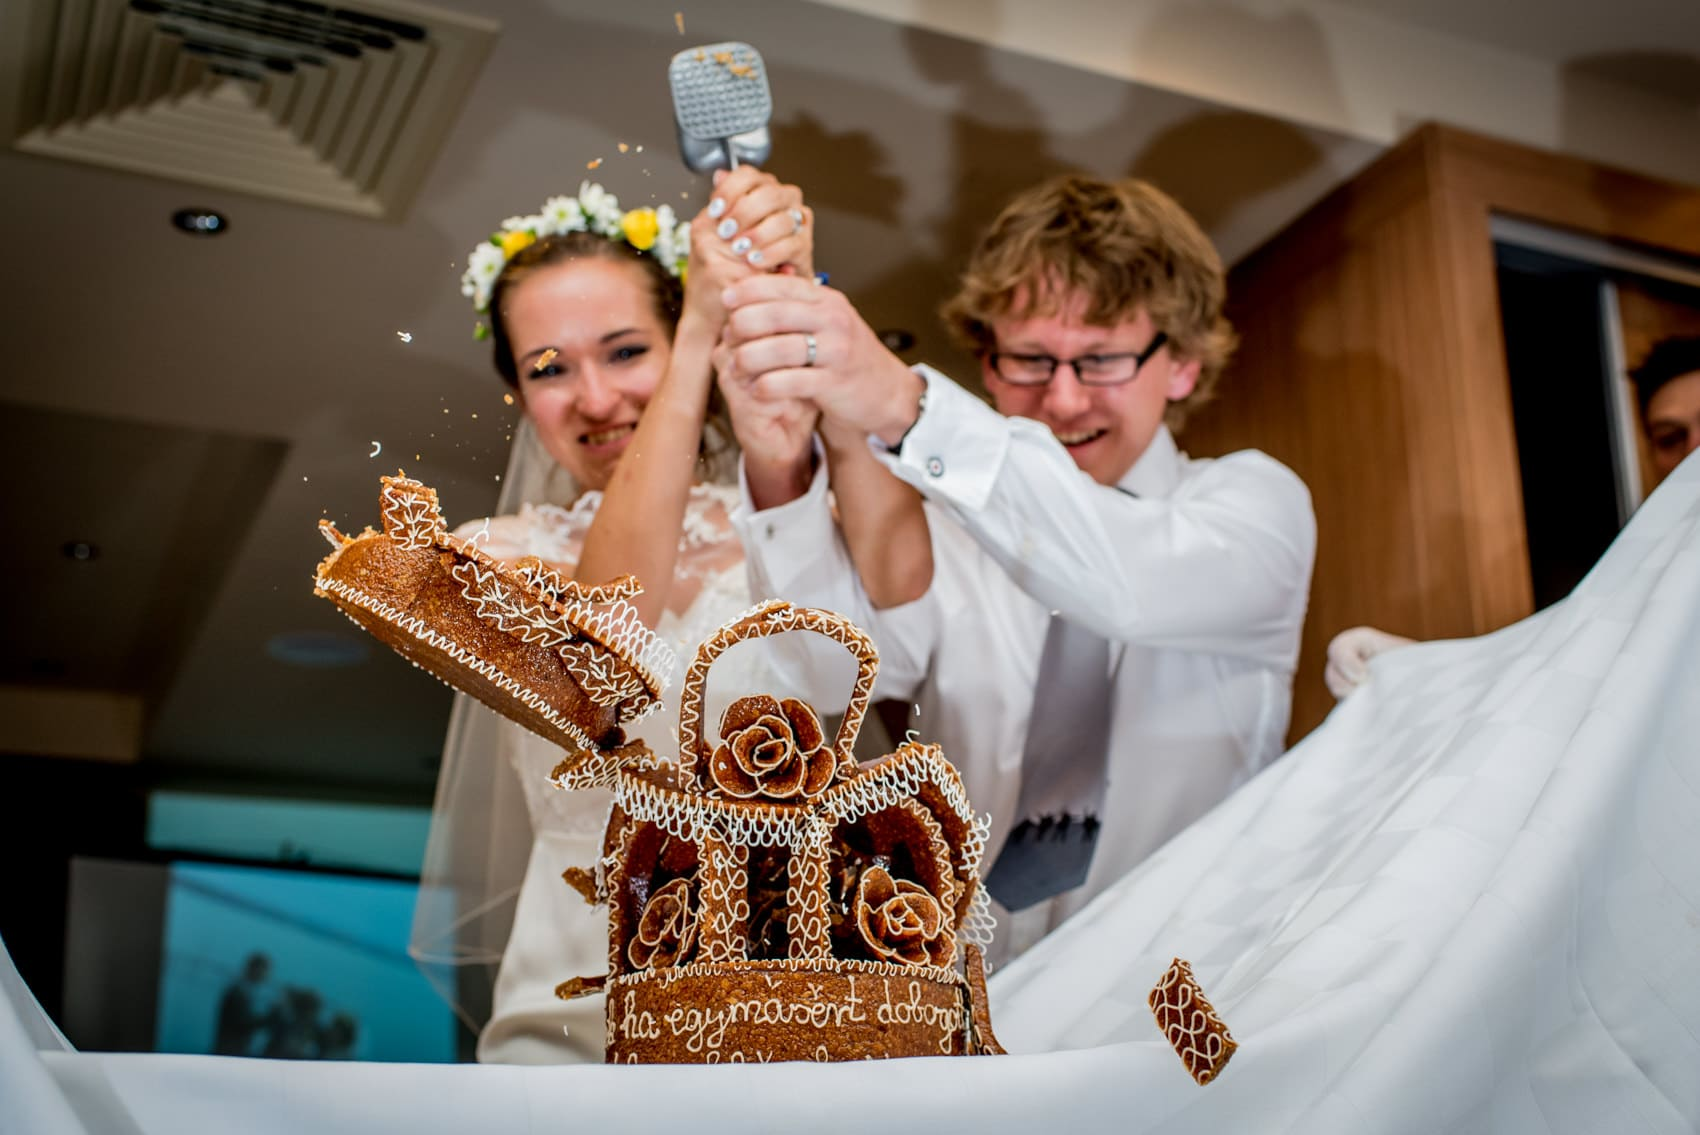 Smashing the cake, a Hungarian wedding tradition